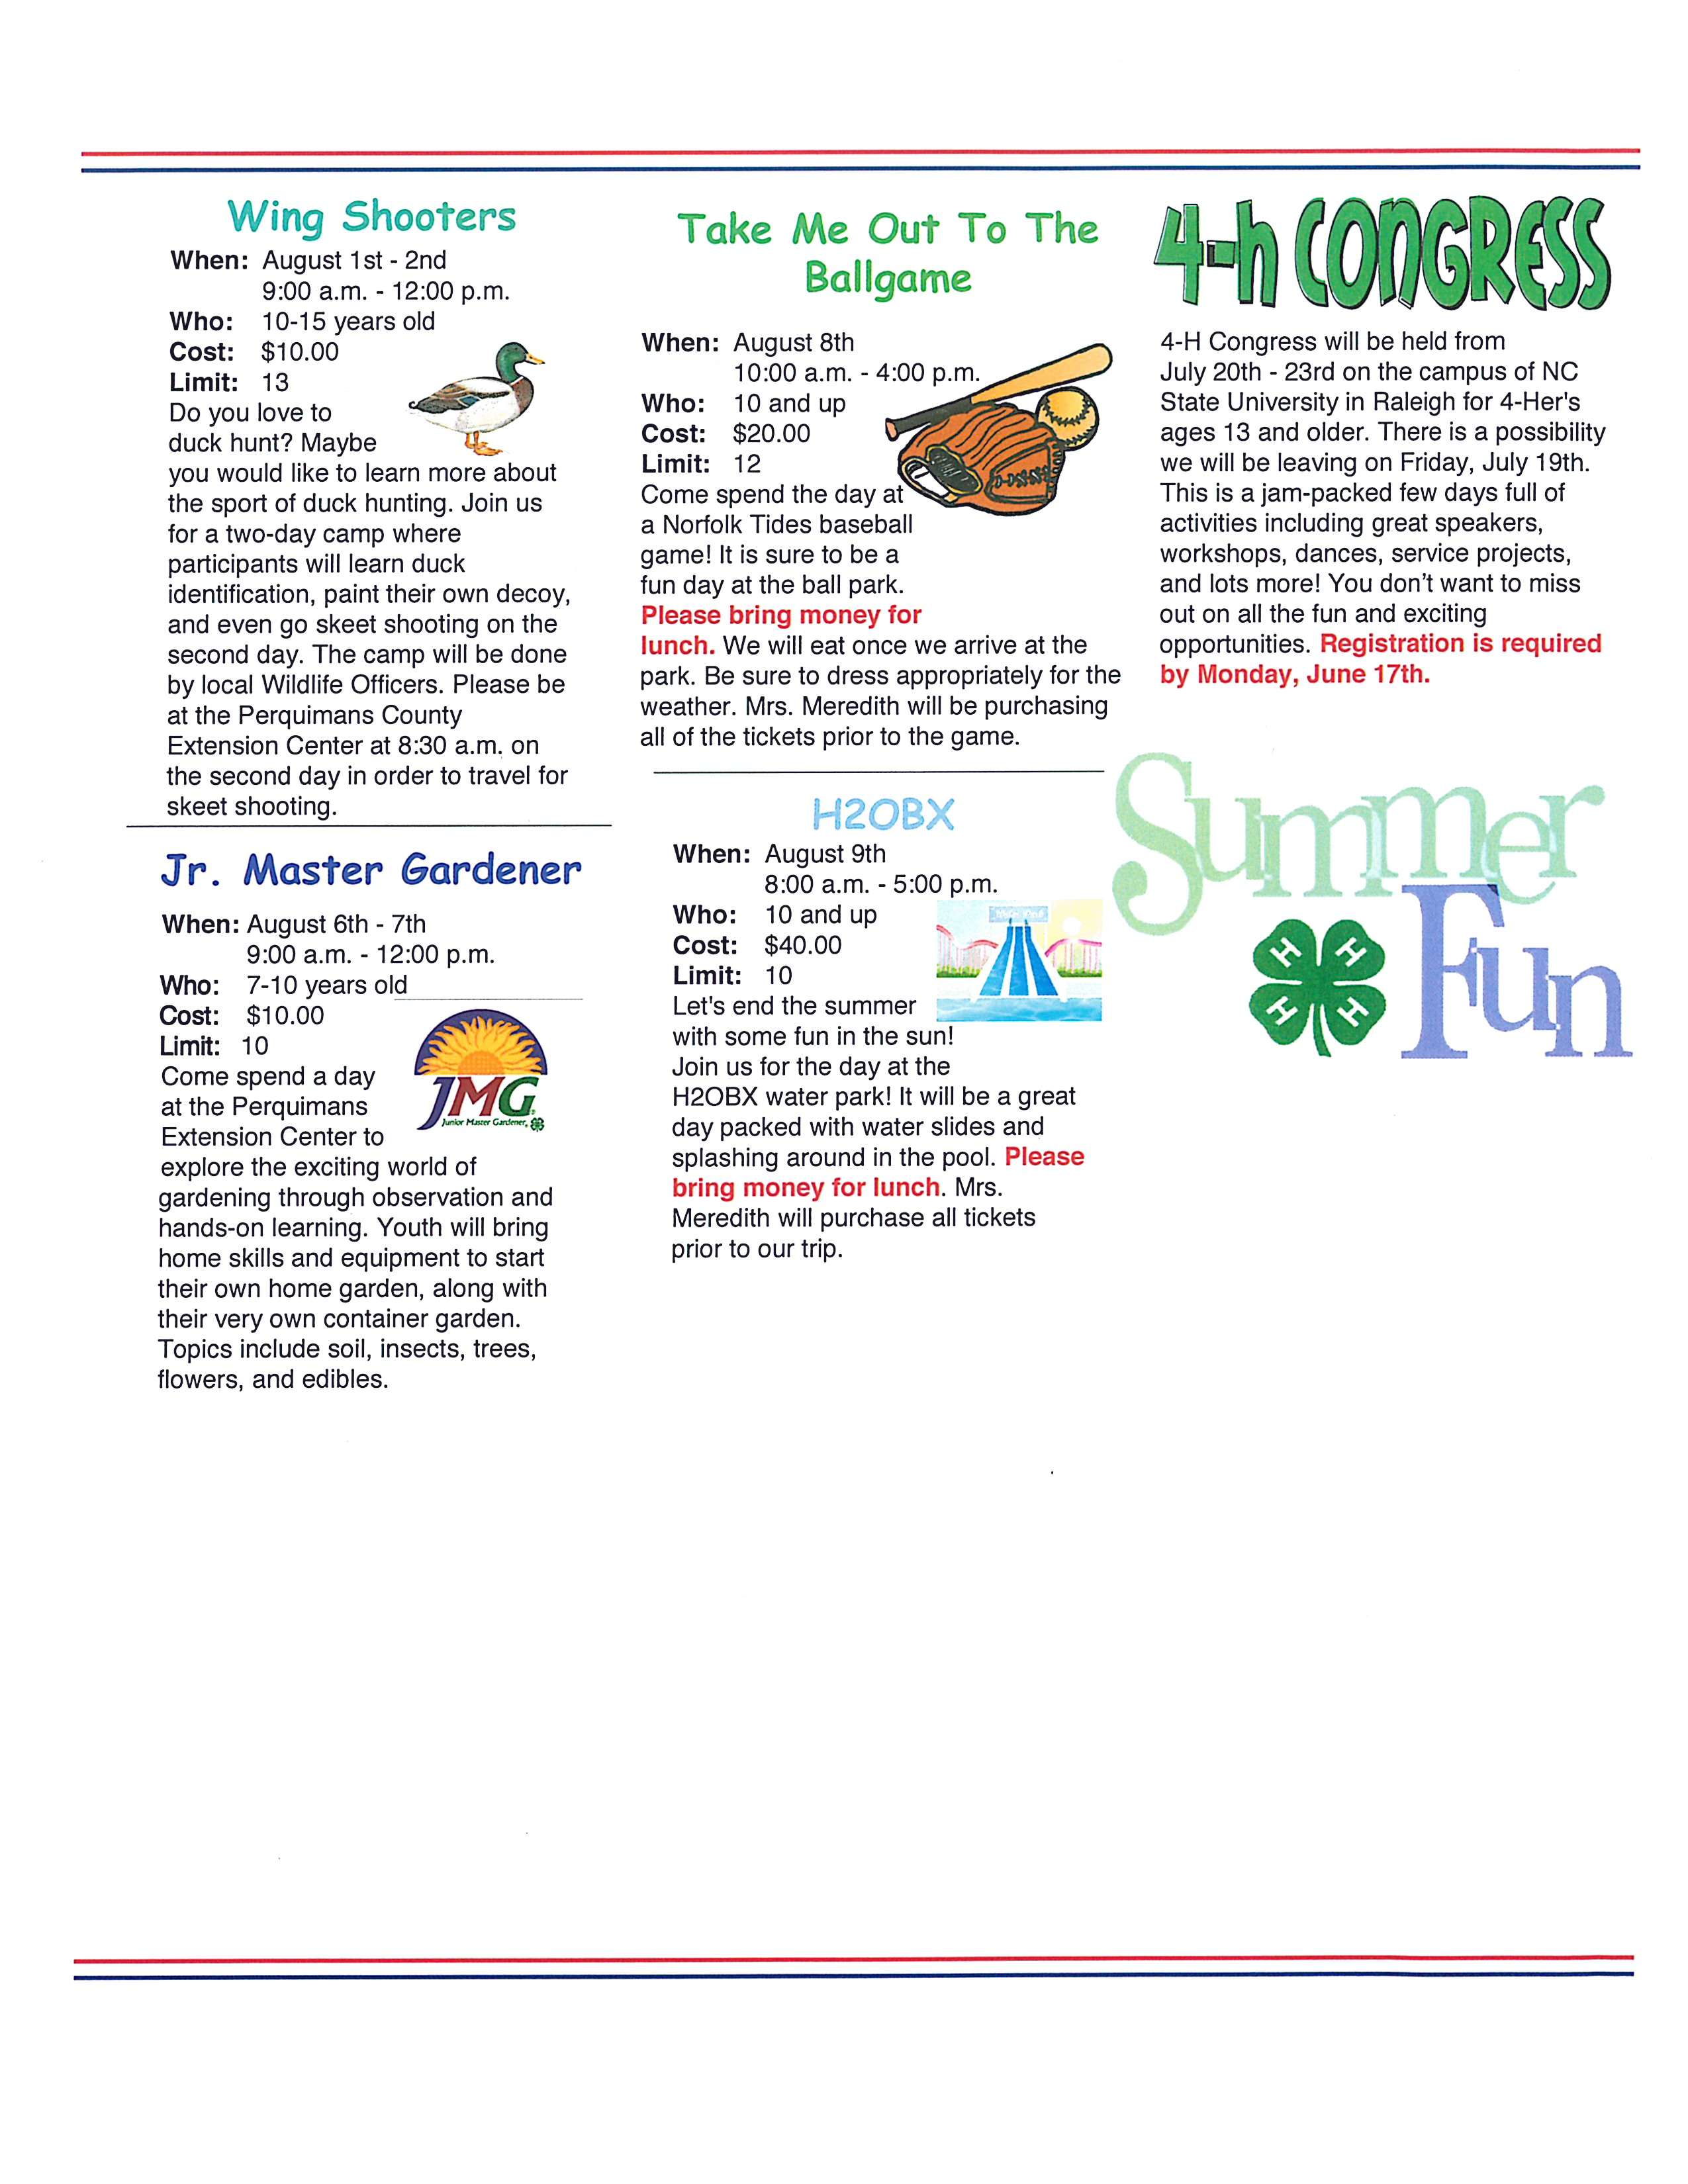 Summer Ventures page 3 image